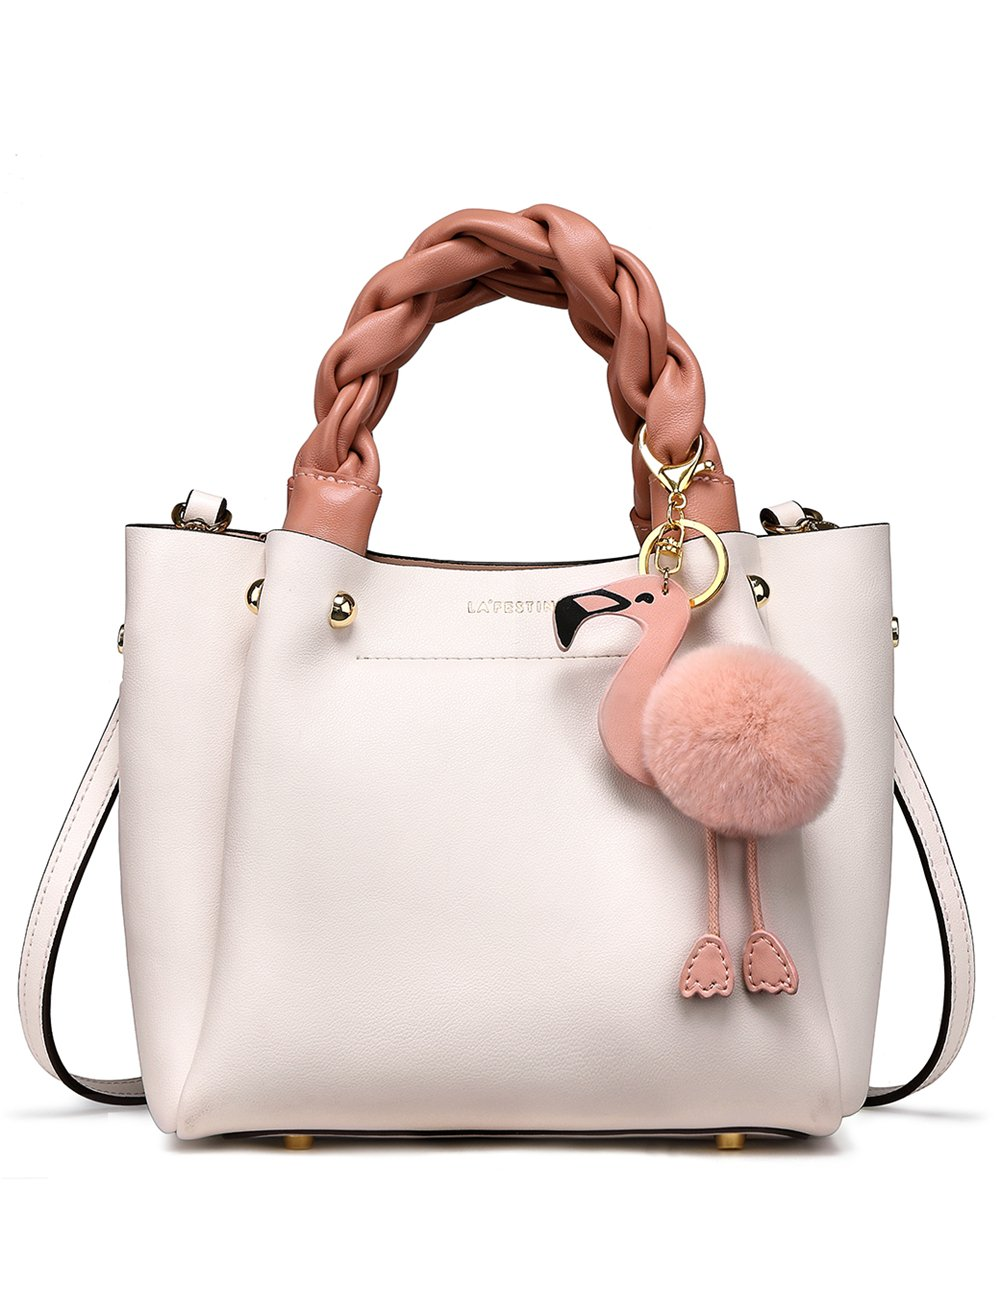 LA'FESTIN Bucket Style Women's Leather Shoulder Handbags with Woven Top Handles Cute Pink Flamingo White Purse